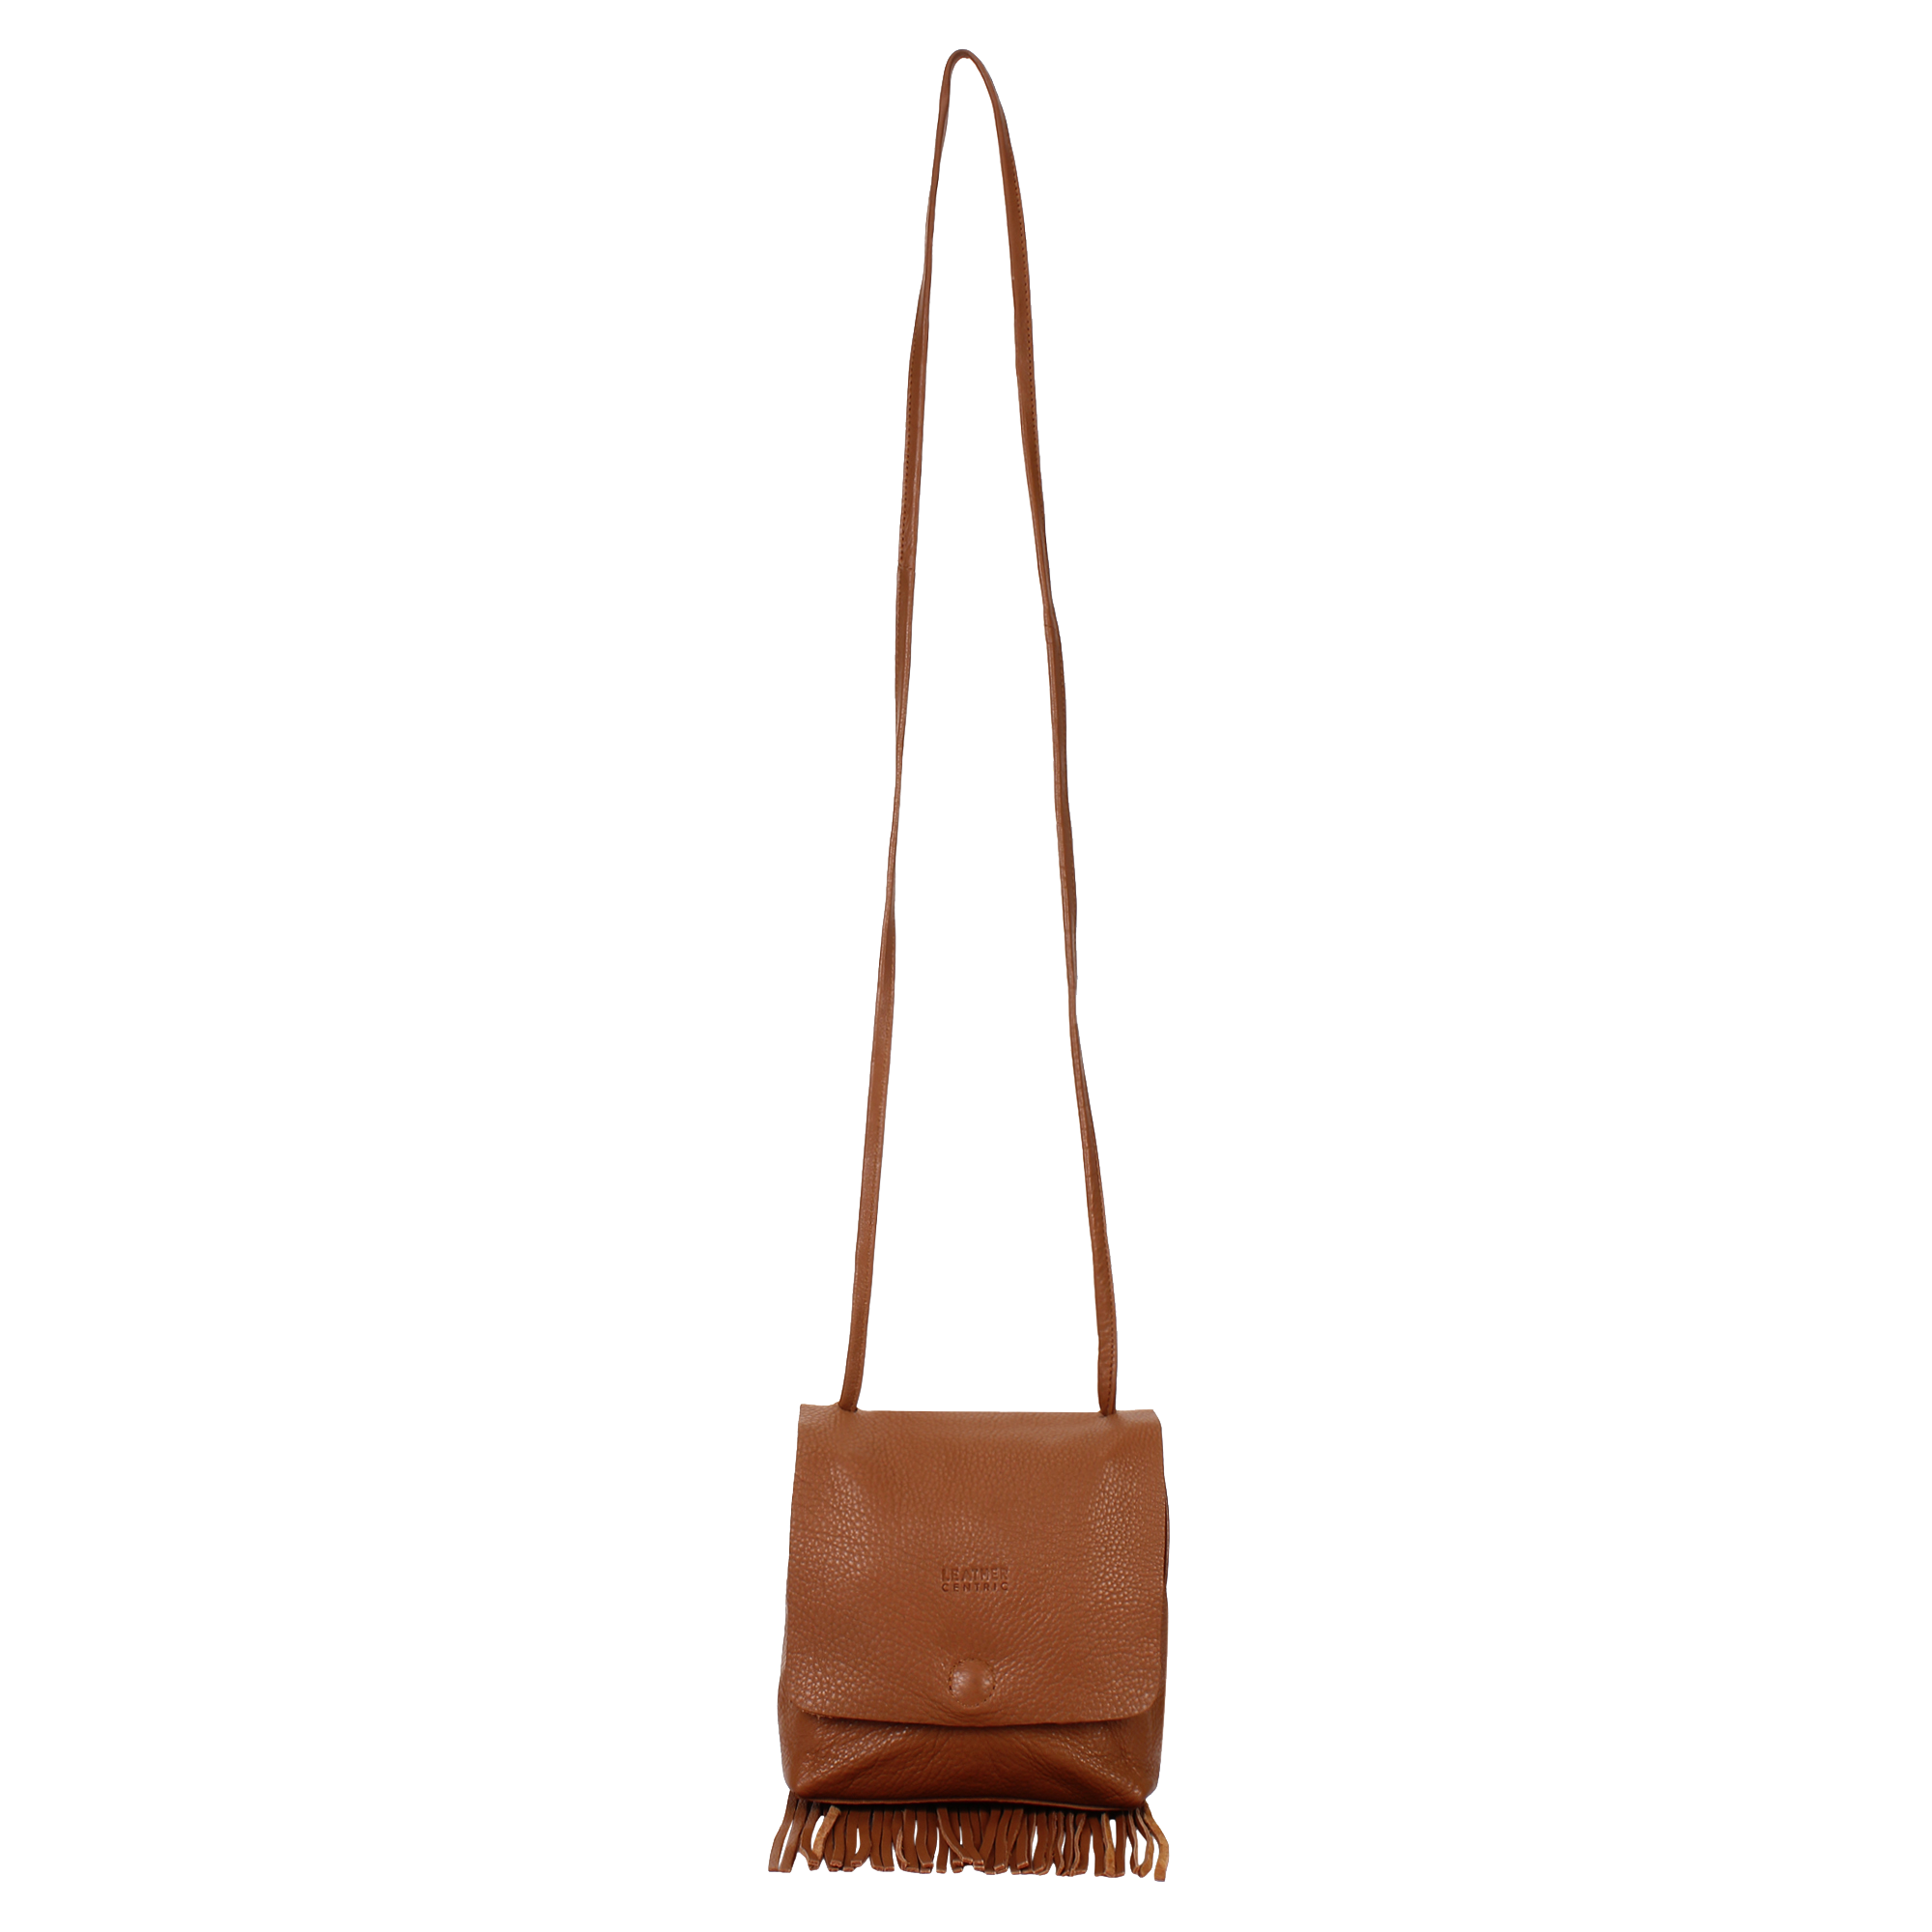 Leather Fringe Boho Crossbody Bag with Tassel for Women (Small, Brown)